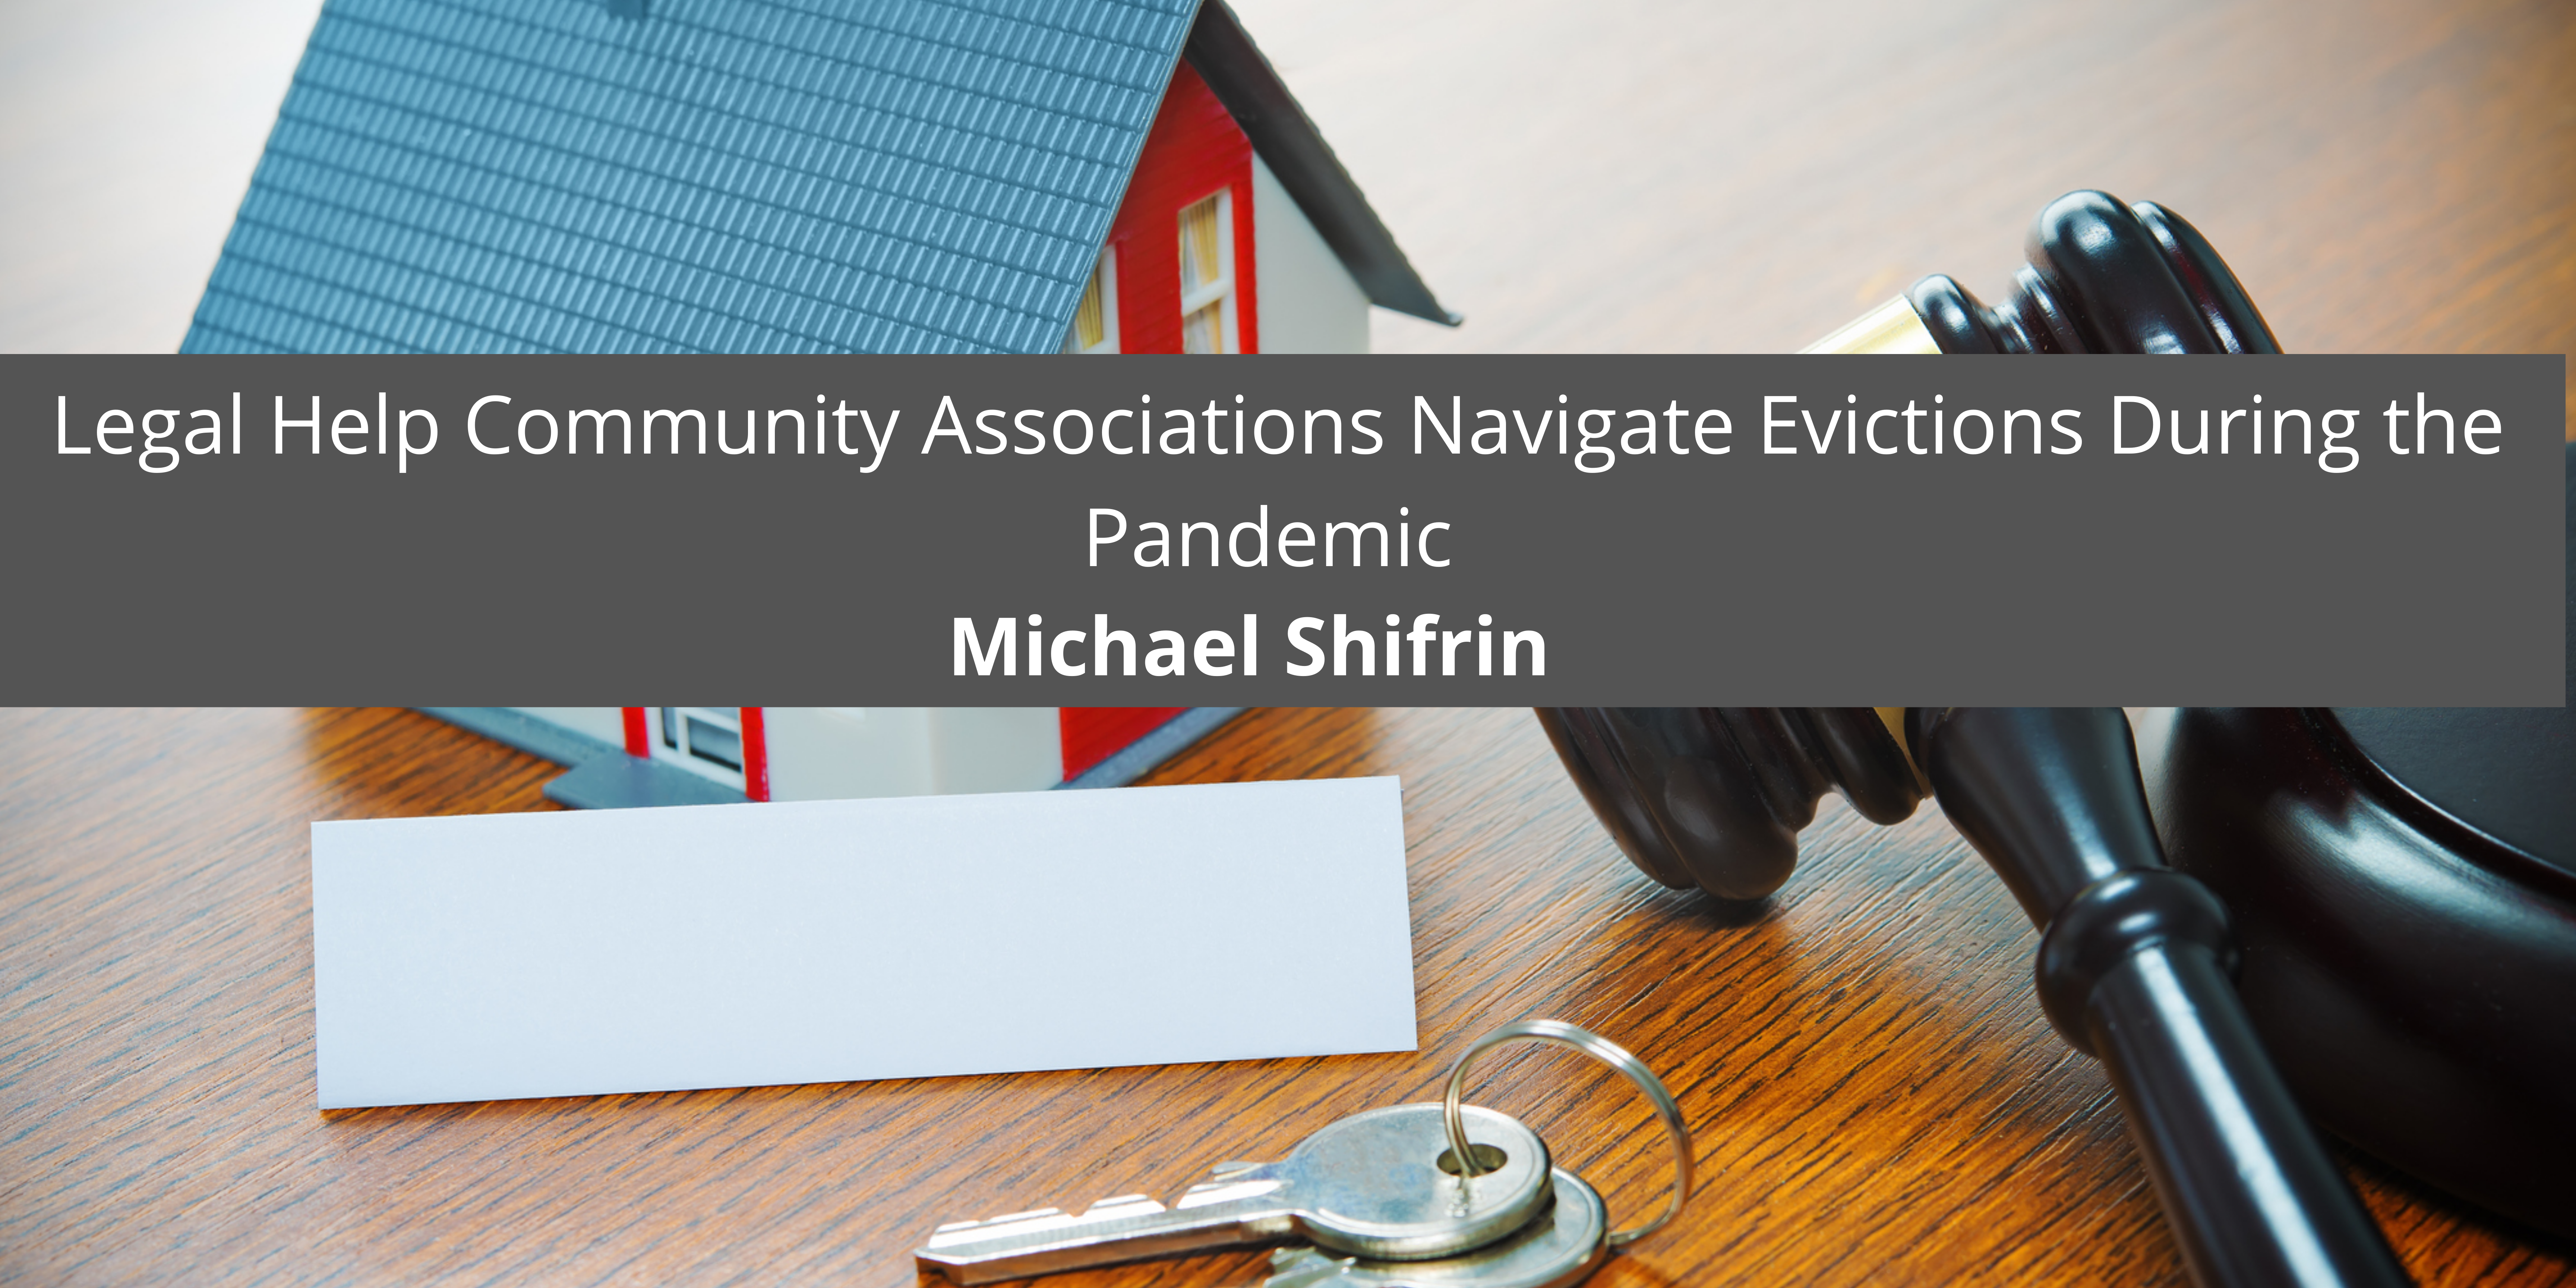 Michael Shifrin and Shifrin Legal Help Community Associations Navigate Evictions During the Pandemic